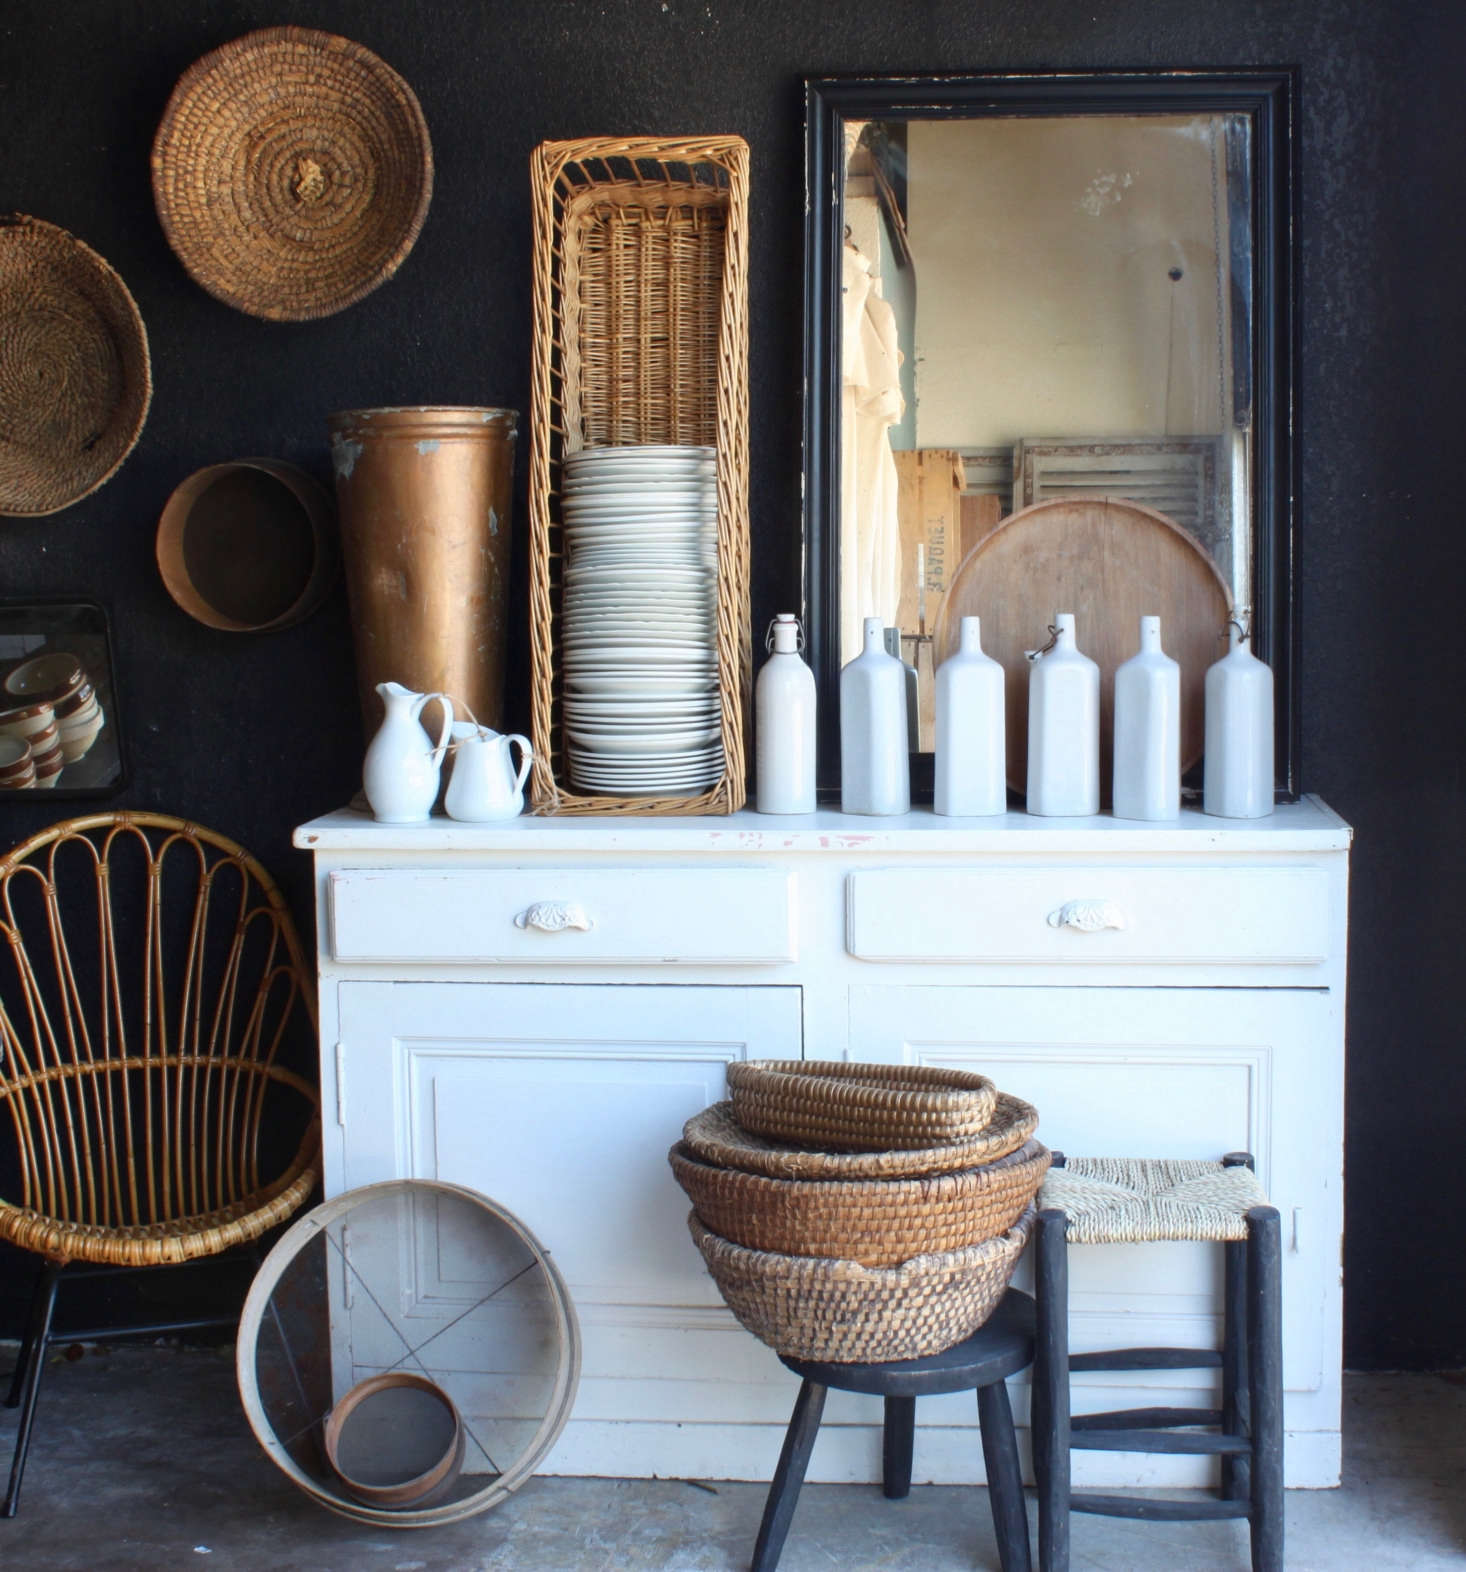 Finds from France inside the Elsie Green emporium in California.